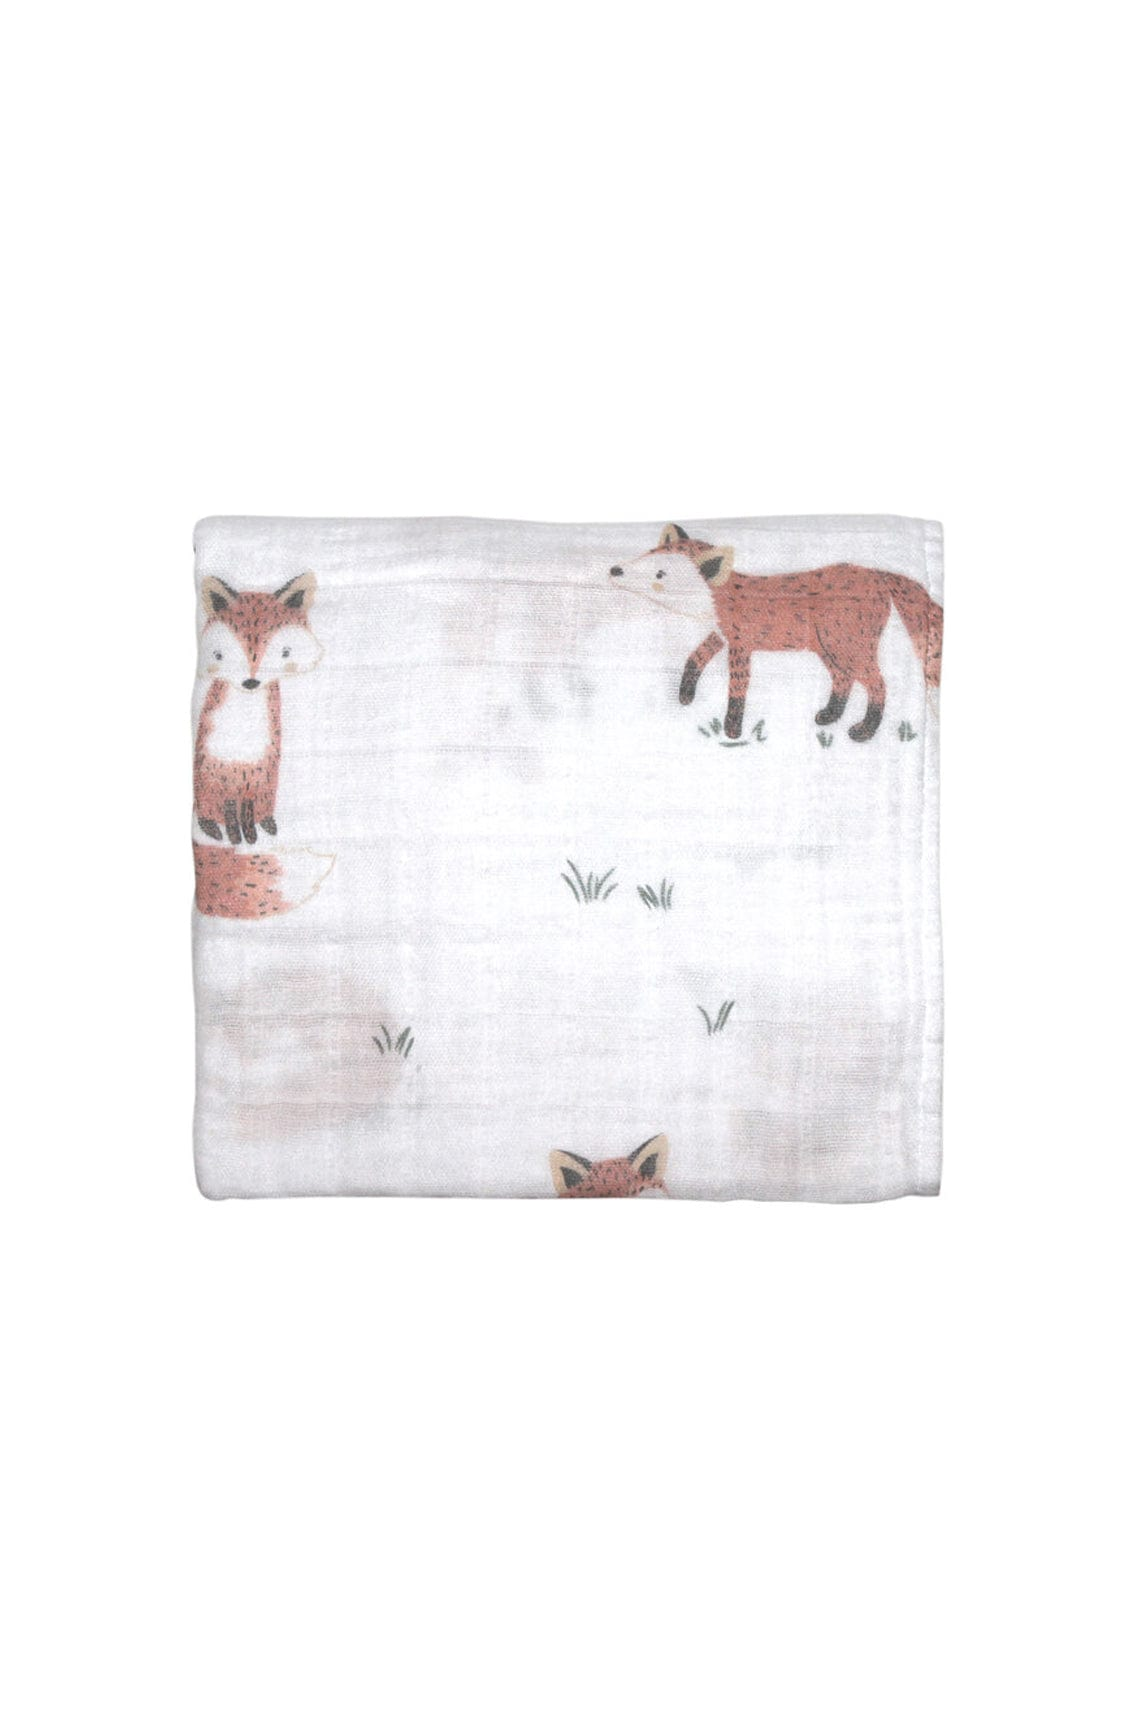 Mister Fly Fox Muslin Wrap - Hello Little Birdie